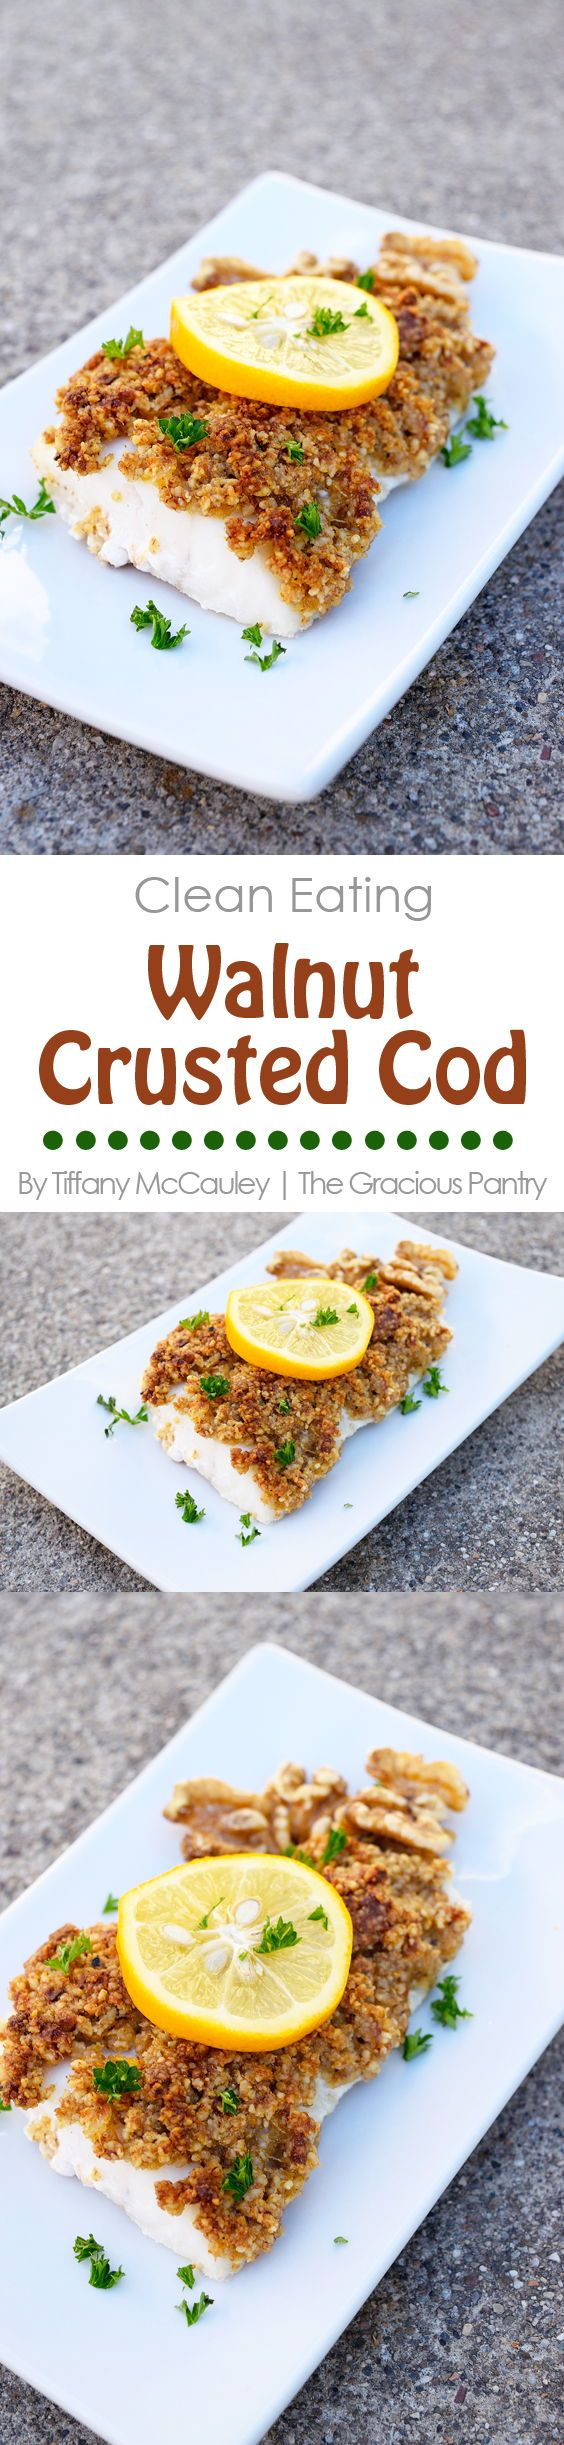 Clean Eating Recipes | Walnut Crusted Cod Recipe | Cod Recipes | Seafood Recipes #CleanEating #CleanEatingRecipe #Whole30